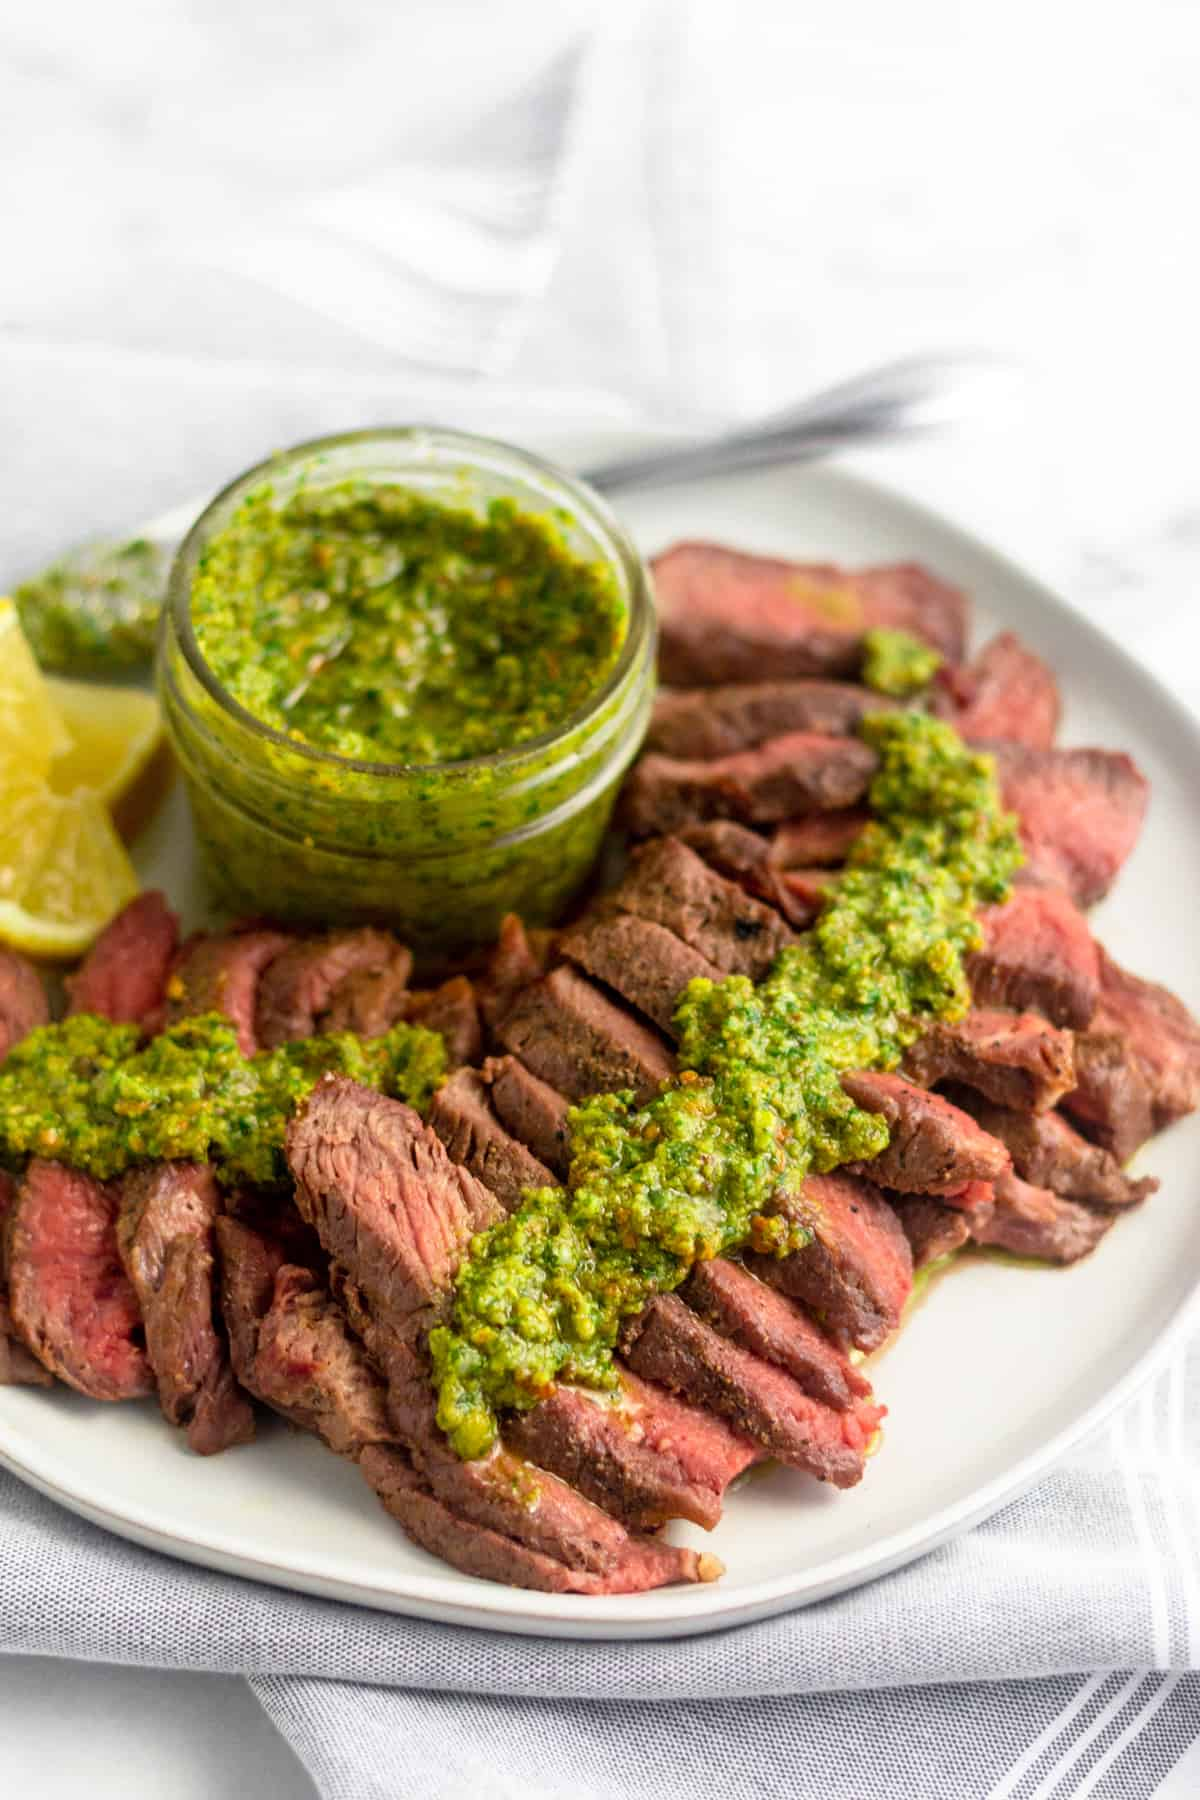 Cut up grilled steak with pistachio pesto on it on a white plate